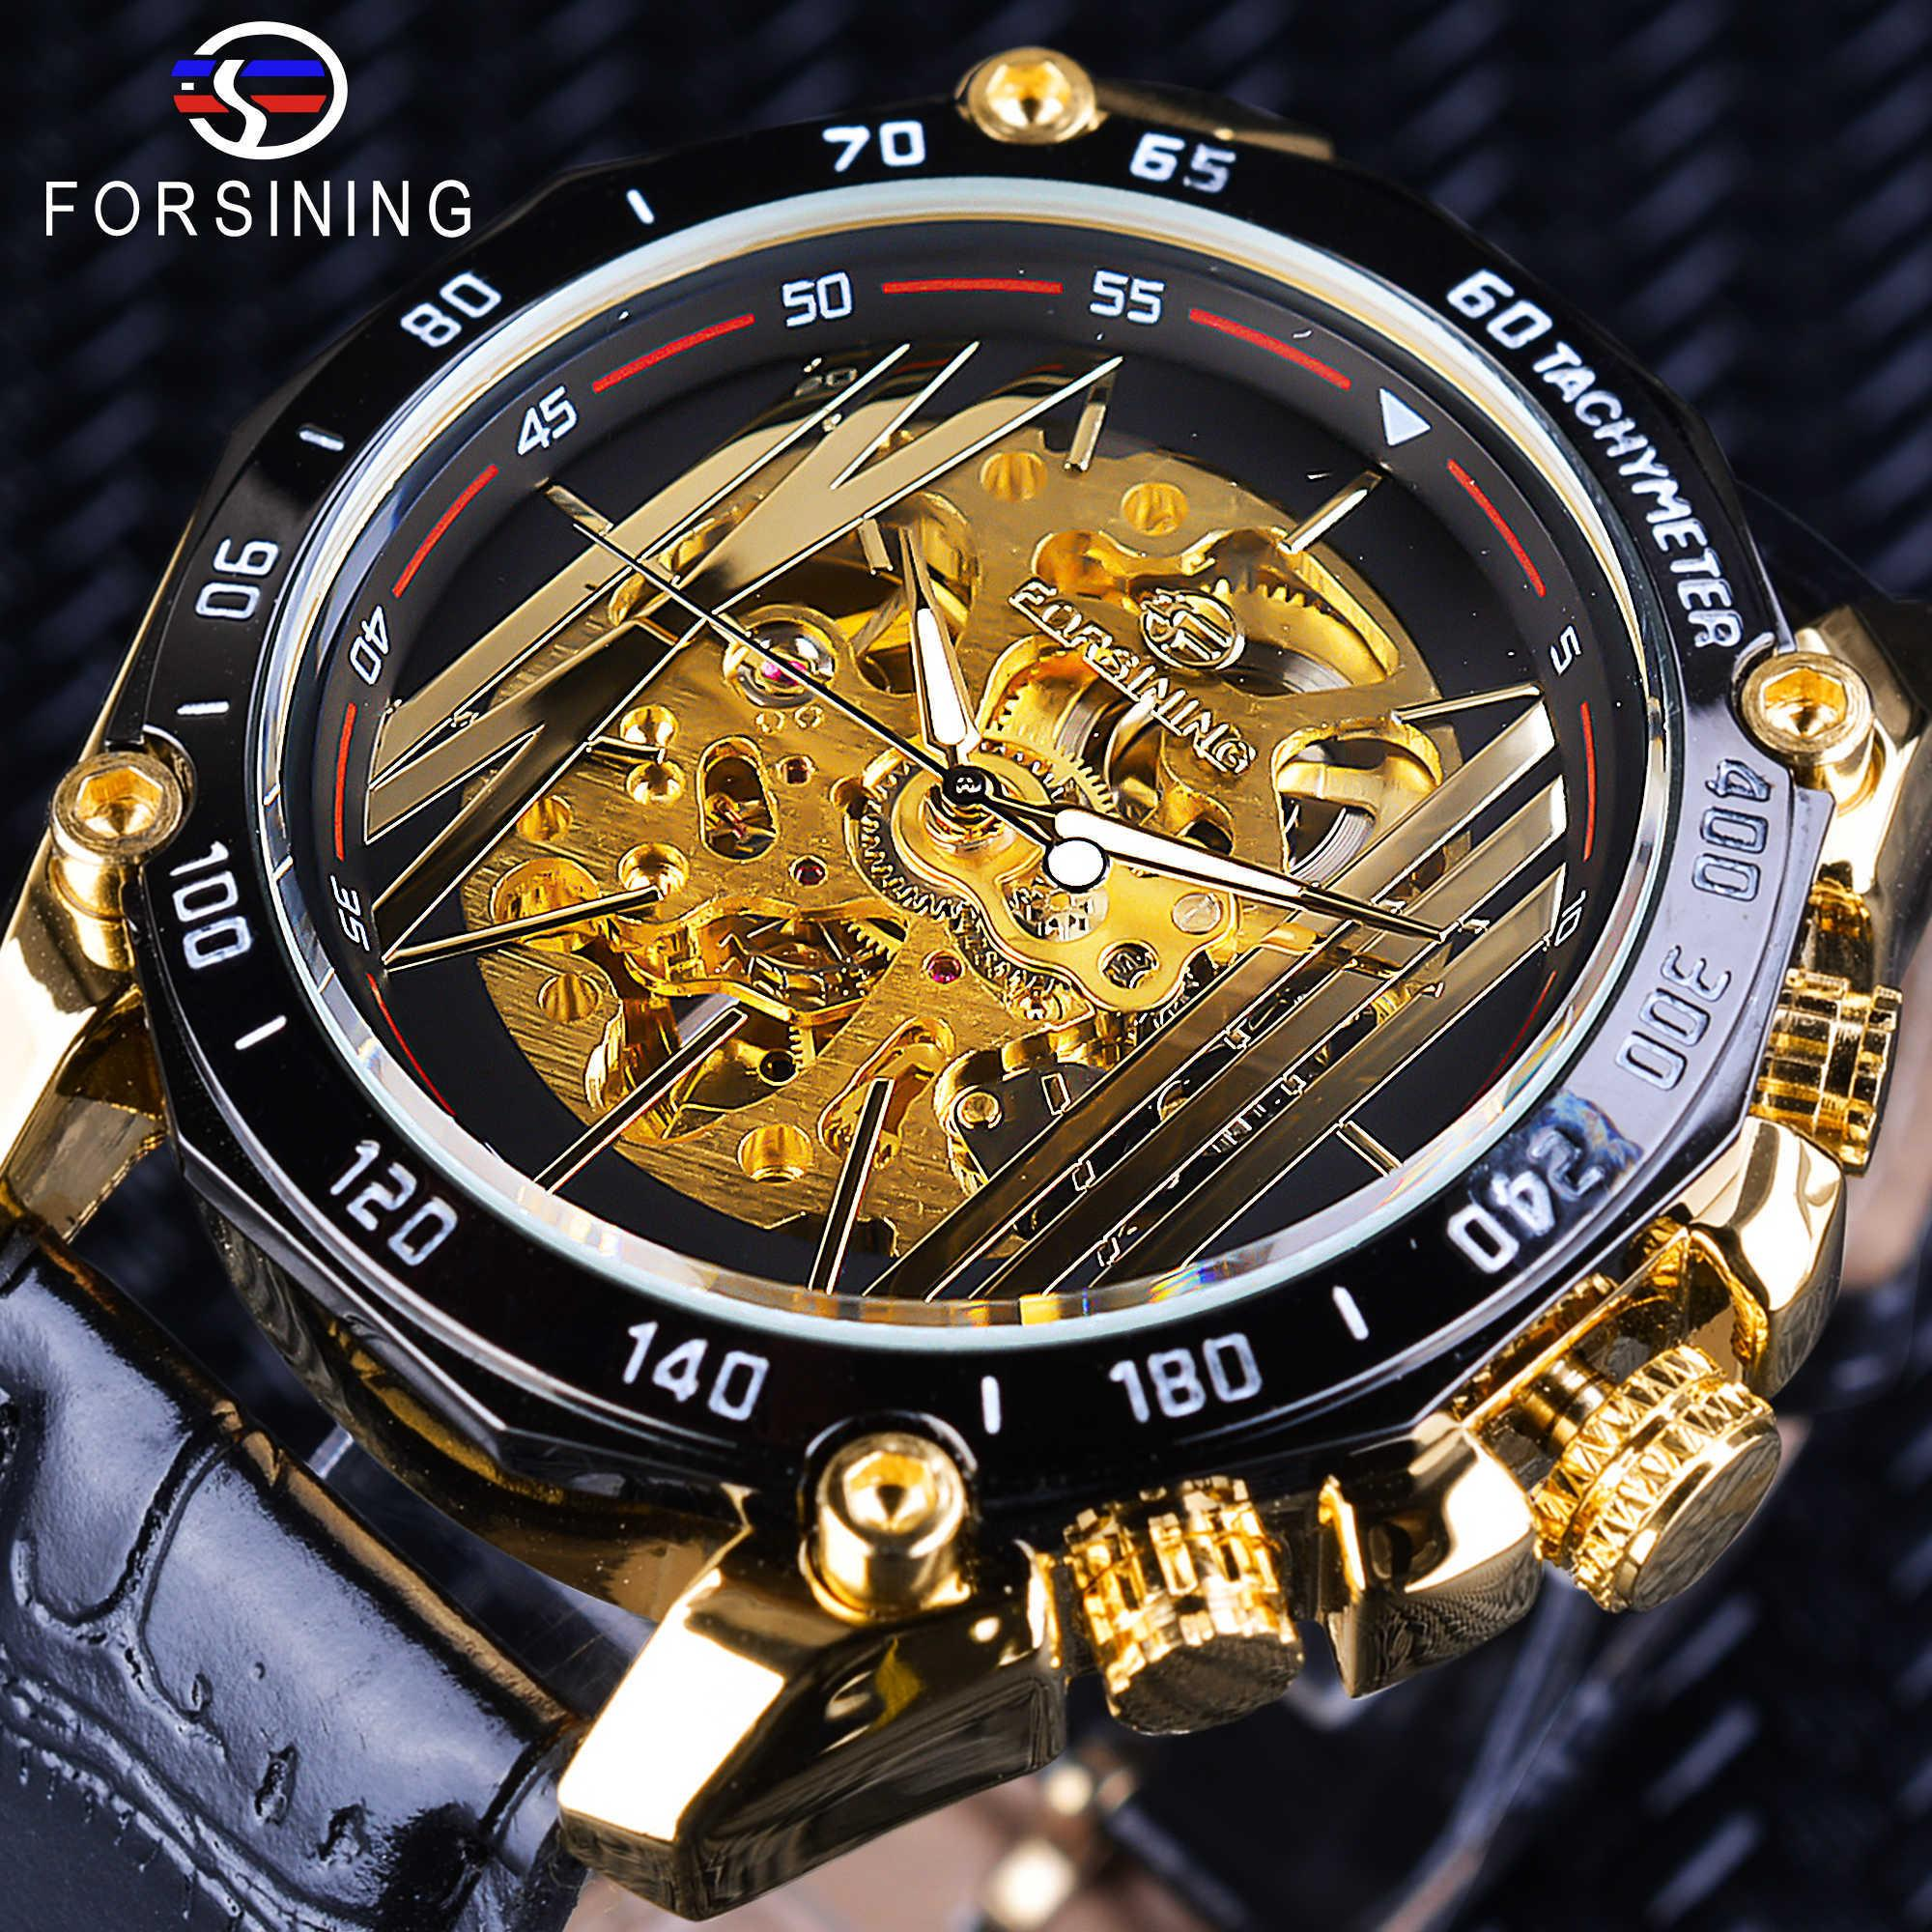 Forsining Big Dial Steampunk Design Luxury Golden Gear Movement Men Creative Openwork Watches Automatic Mechanical Wrist Watches Y19052103